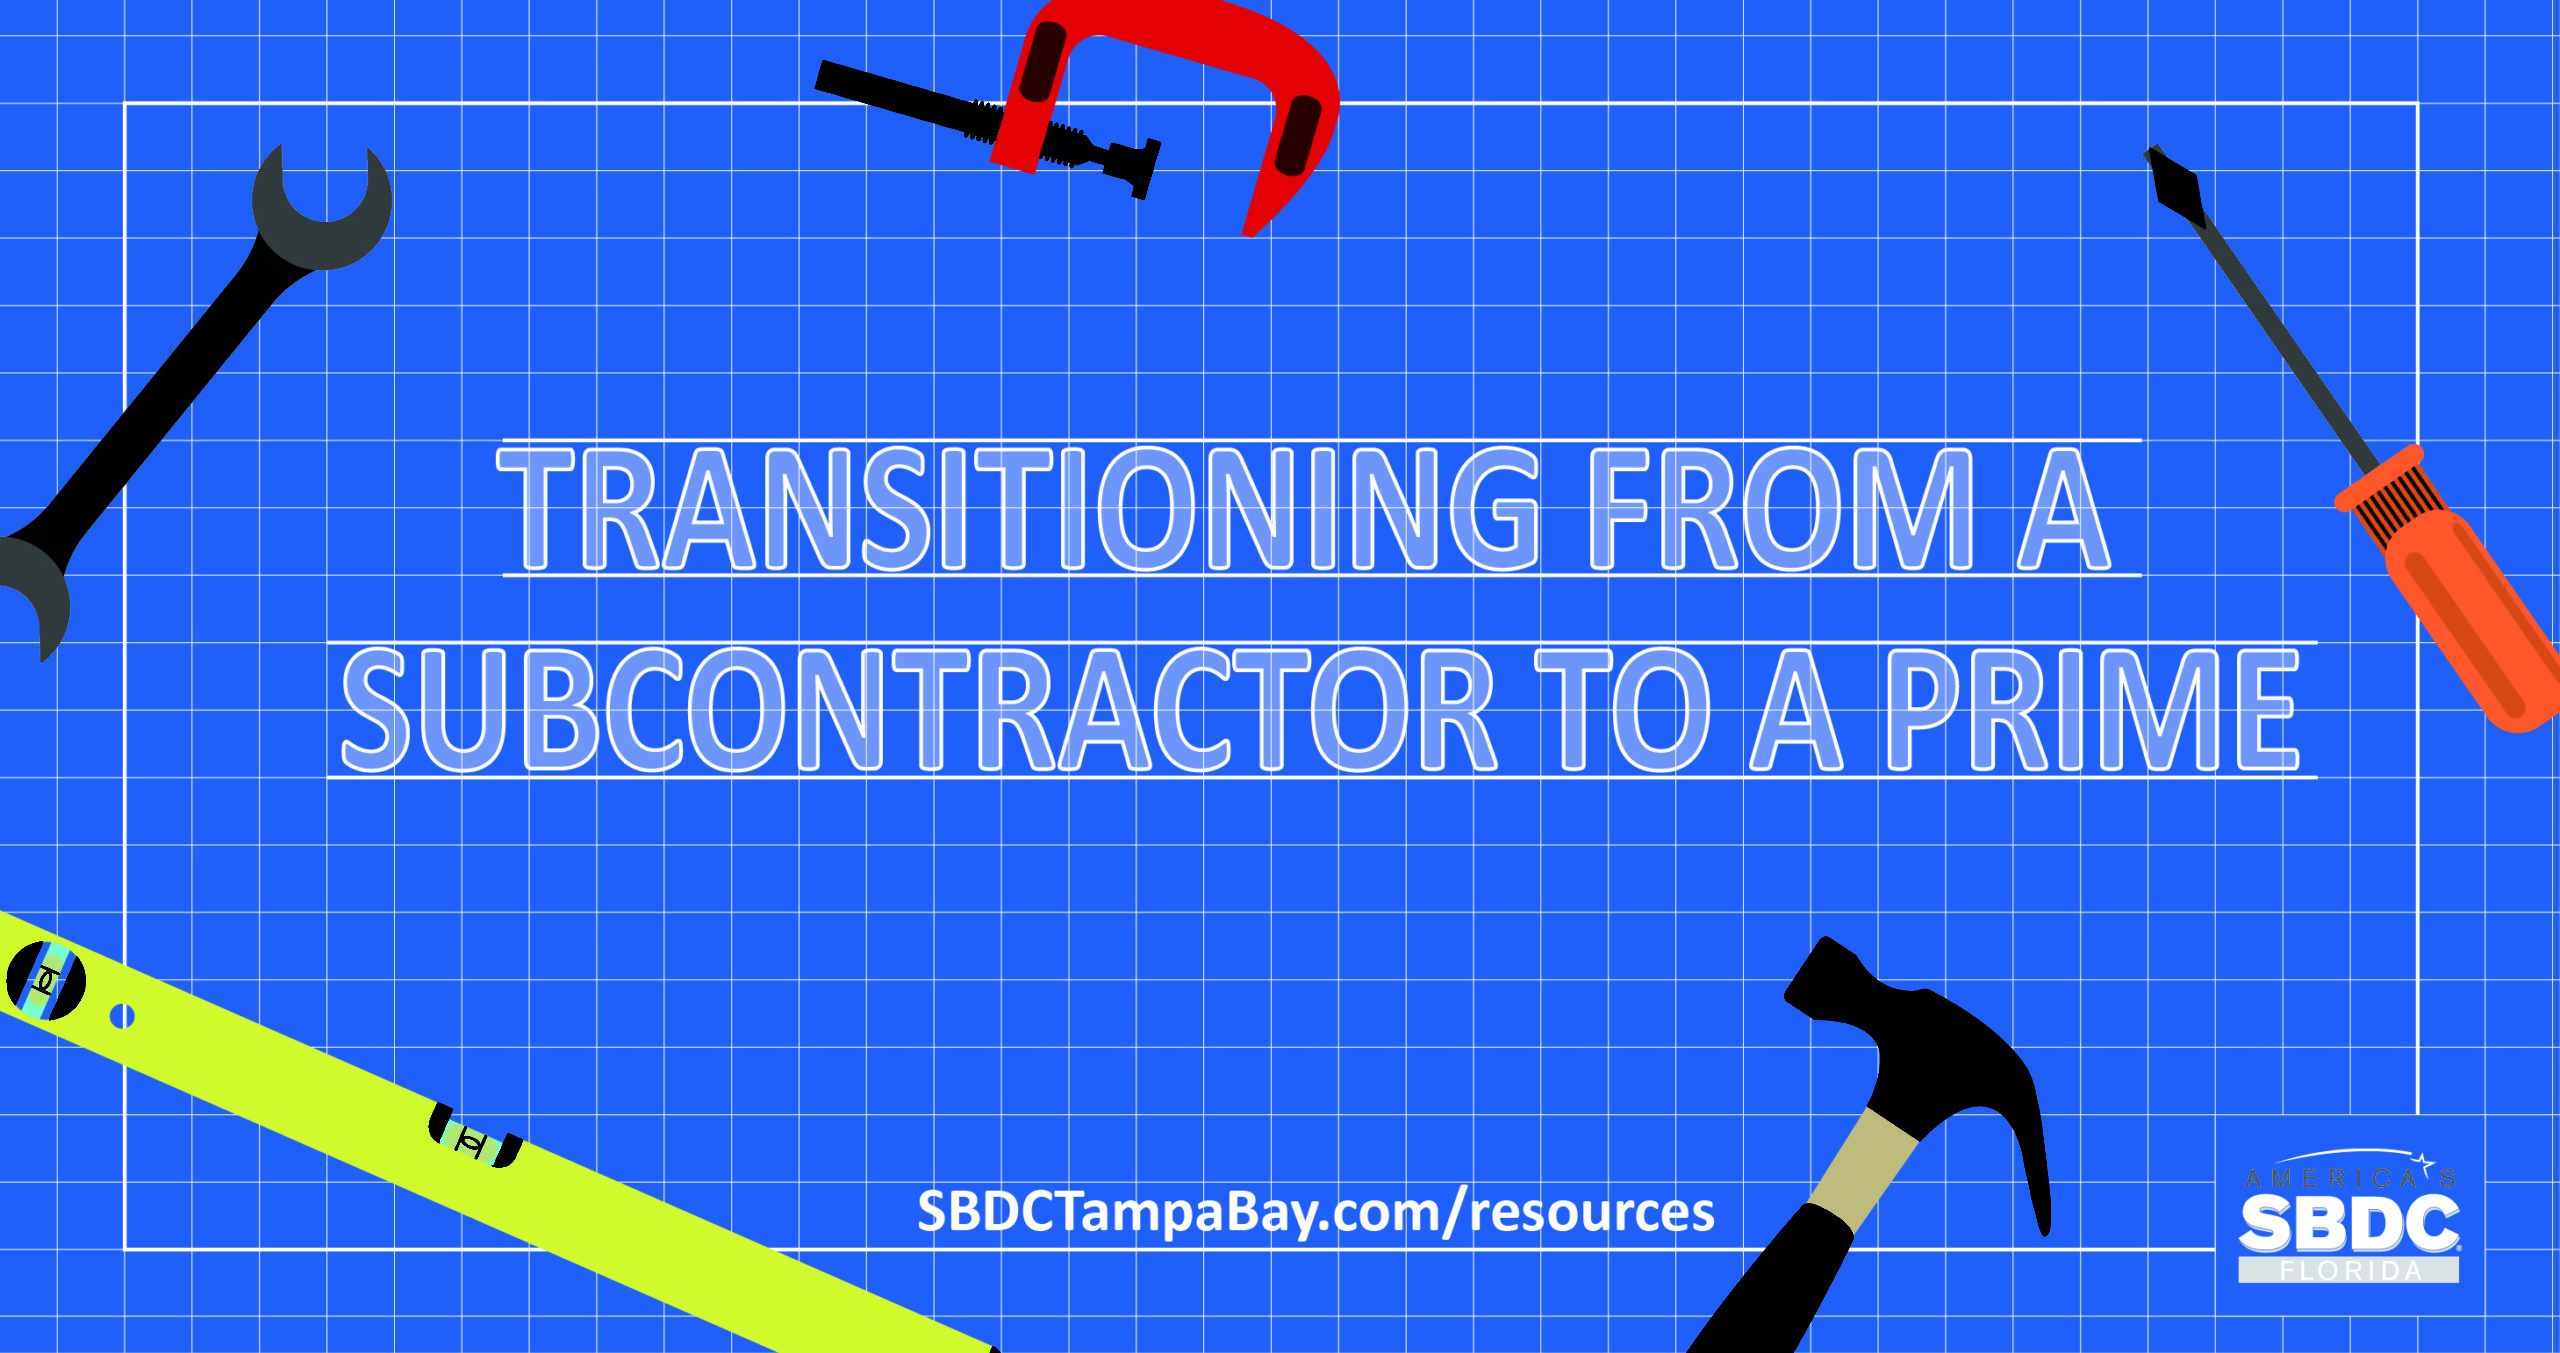 Tips for Transitioning from a Subcontractor to a Prime